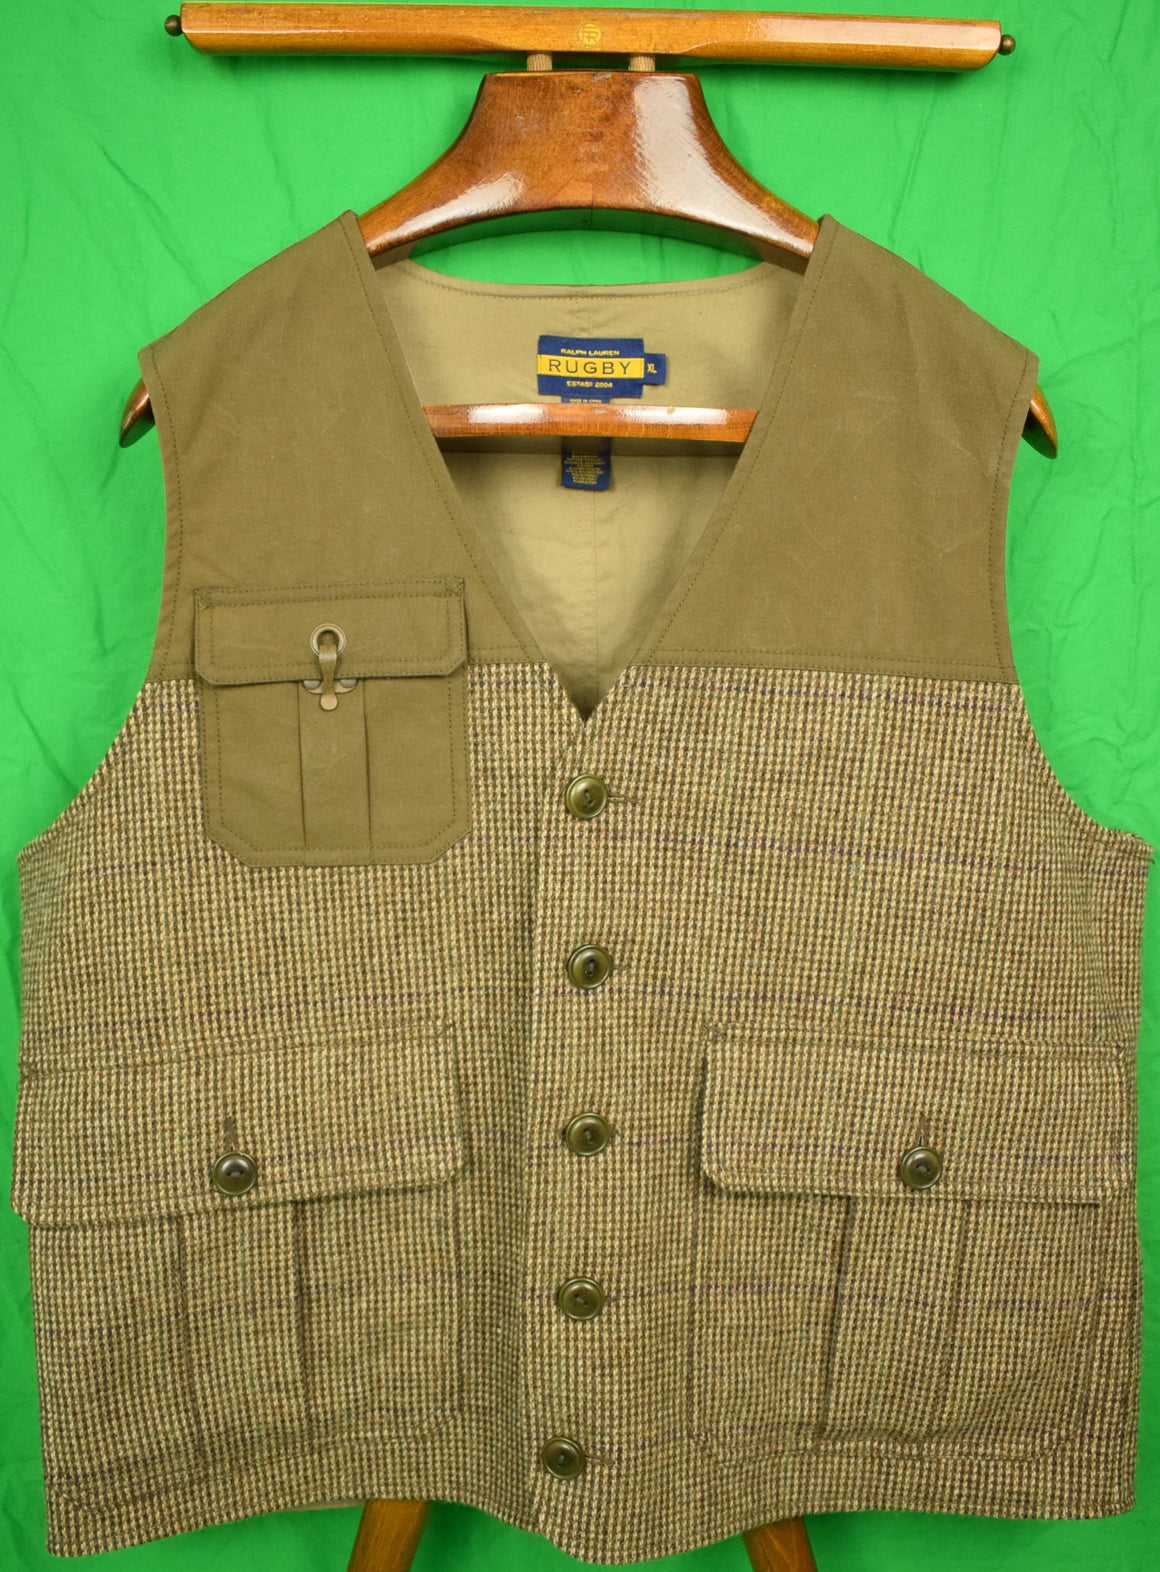 Polo Rugby Tweed Run Shooting Vest Sz: XL (New w/ Tags!)